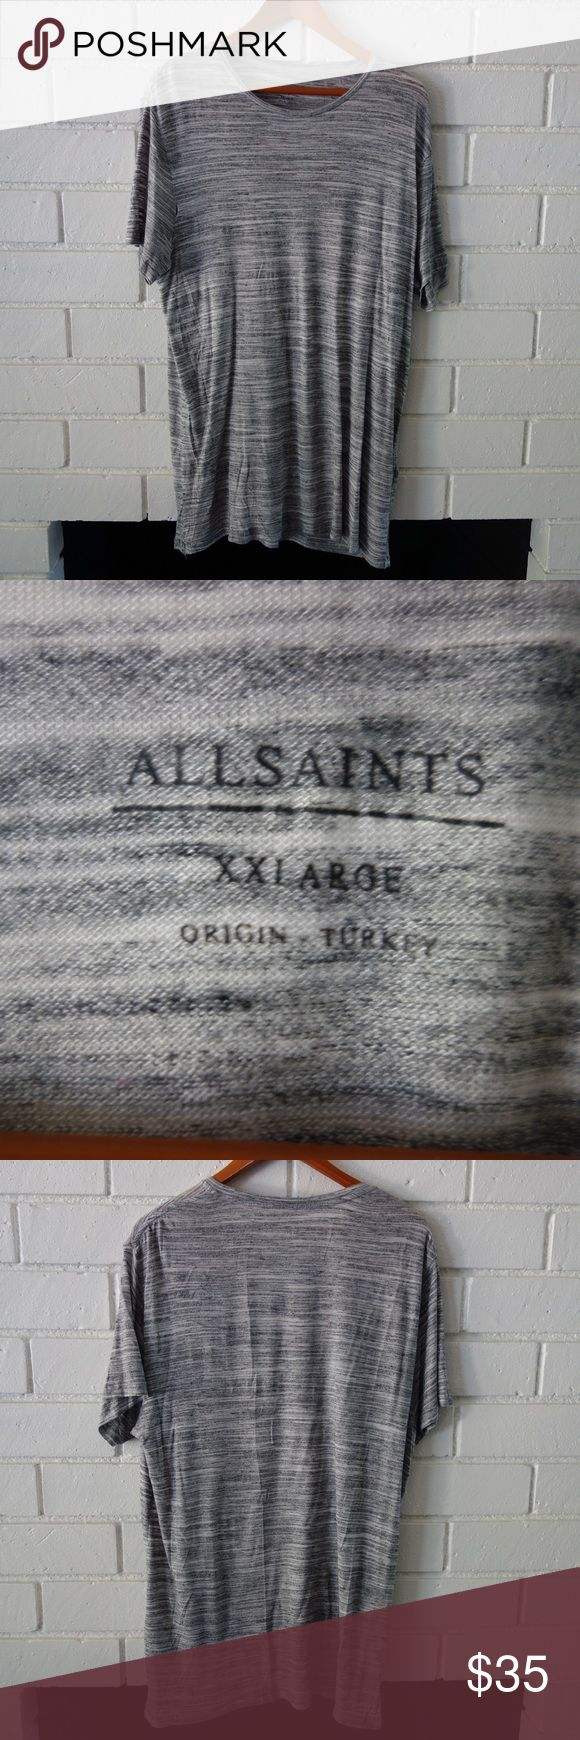 """All Saints Long Line Tee Allsaints Short Sleeve Tee Great condition. 8/10. One small snag on back and small opening along front seam of right sleeve, shown in pictures. Easily fixed. Faded black, grey and white small stripe-like pattern makes this tee easy to layer and wear. Soft viscose and polyester blend holds it's shape and drapes nicely. Usually wear an M size. Looks great.  Measurements flat: 10"""" neck 9"""" sleeve 23"""" armpit to armpit 27"""" front neck to hem Look at pictures and ask…"""